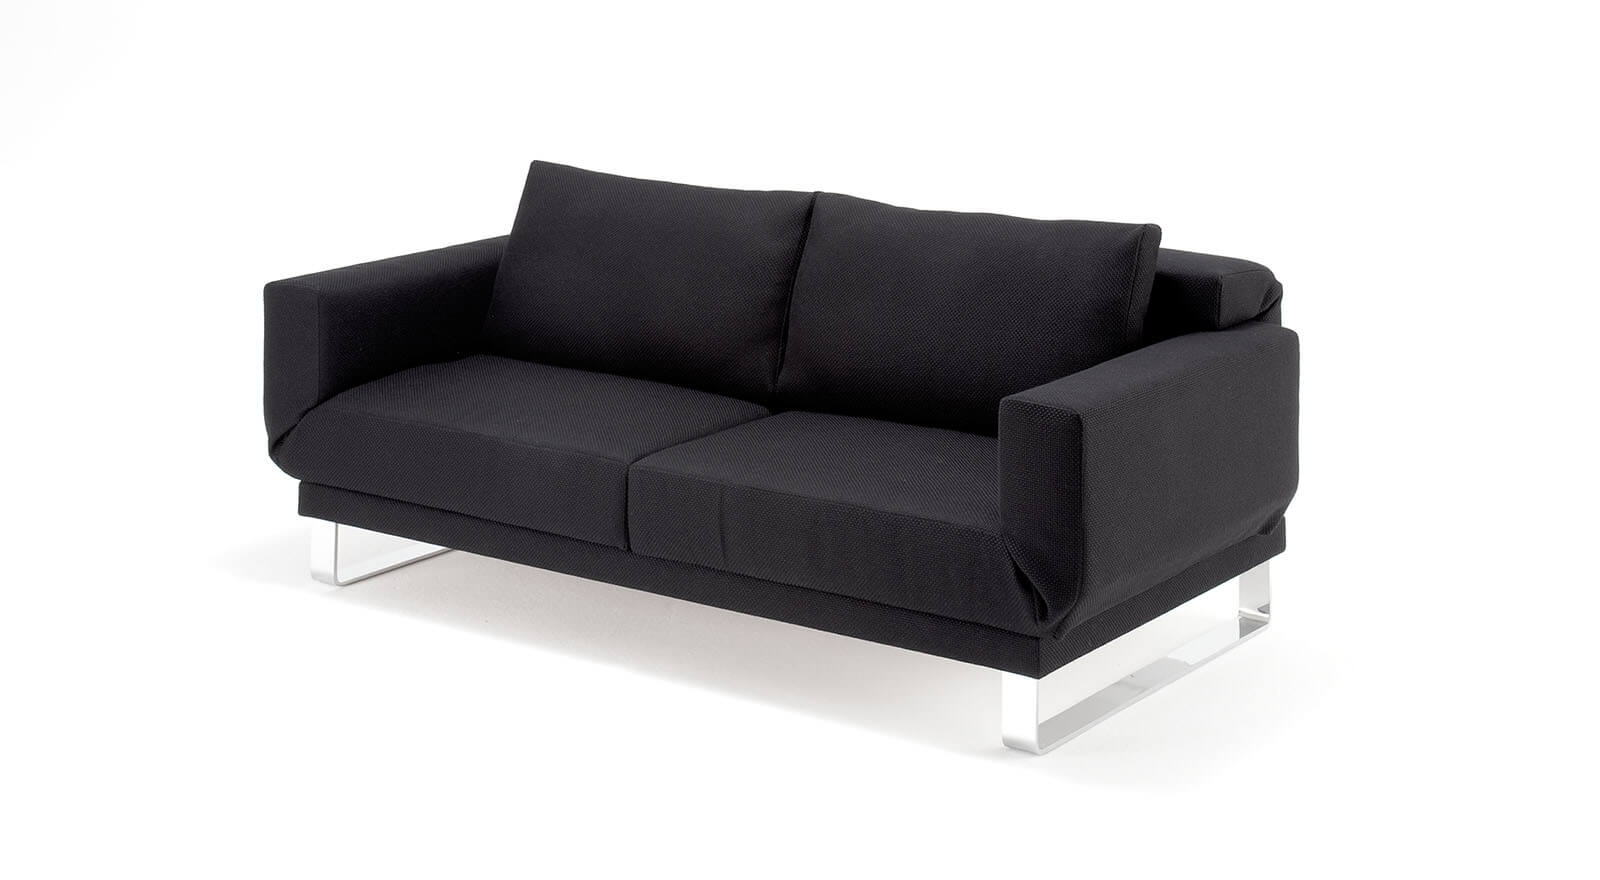 schlafsofa riga xl sitline einrichtungshaus kiel. Black Bedroom Furniture Sets. Home Design Ideas